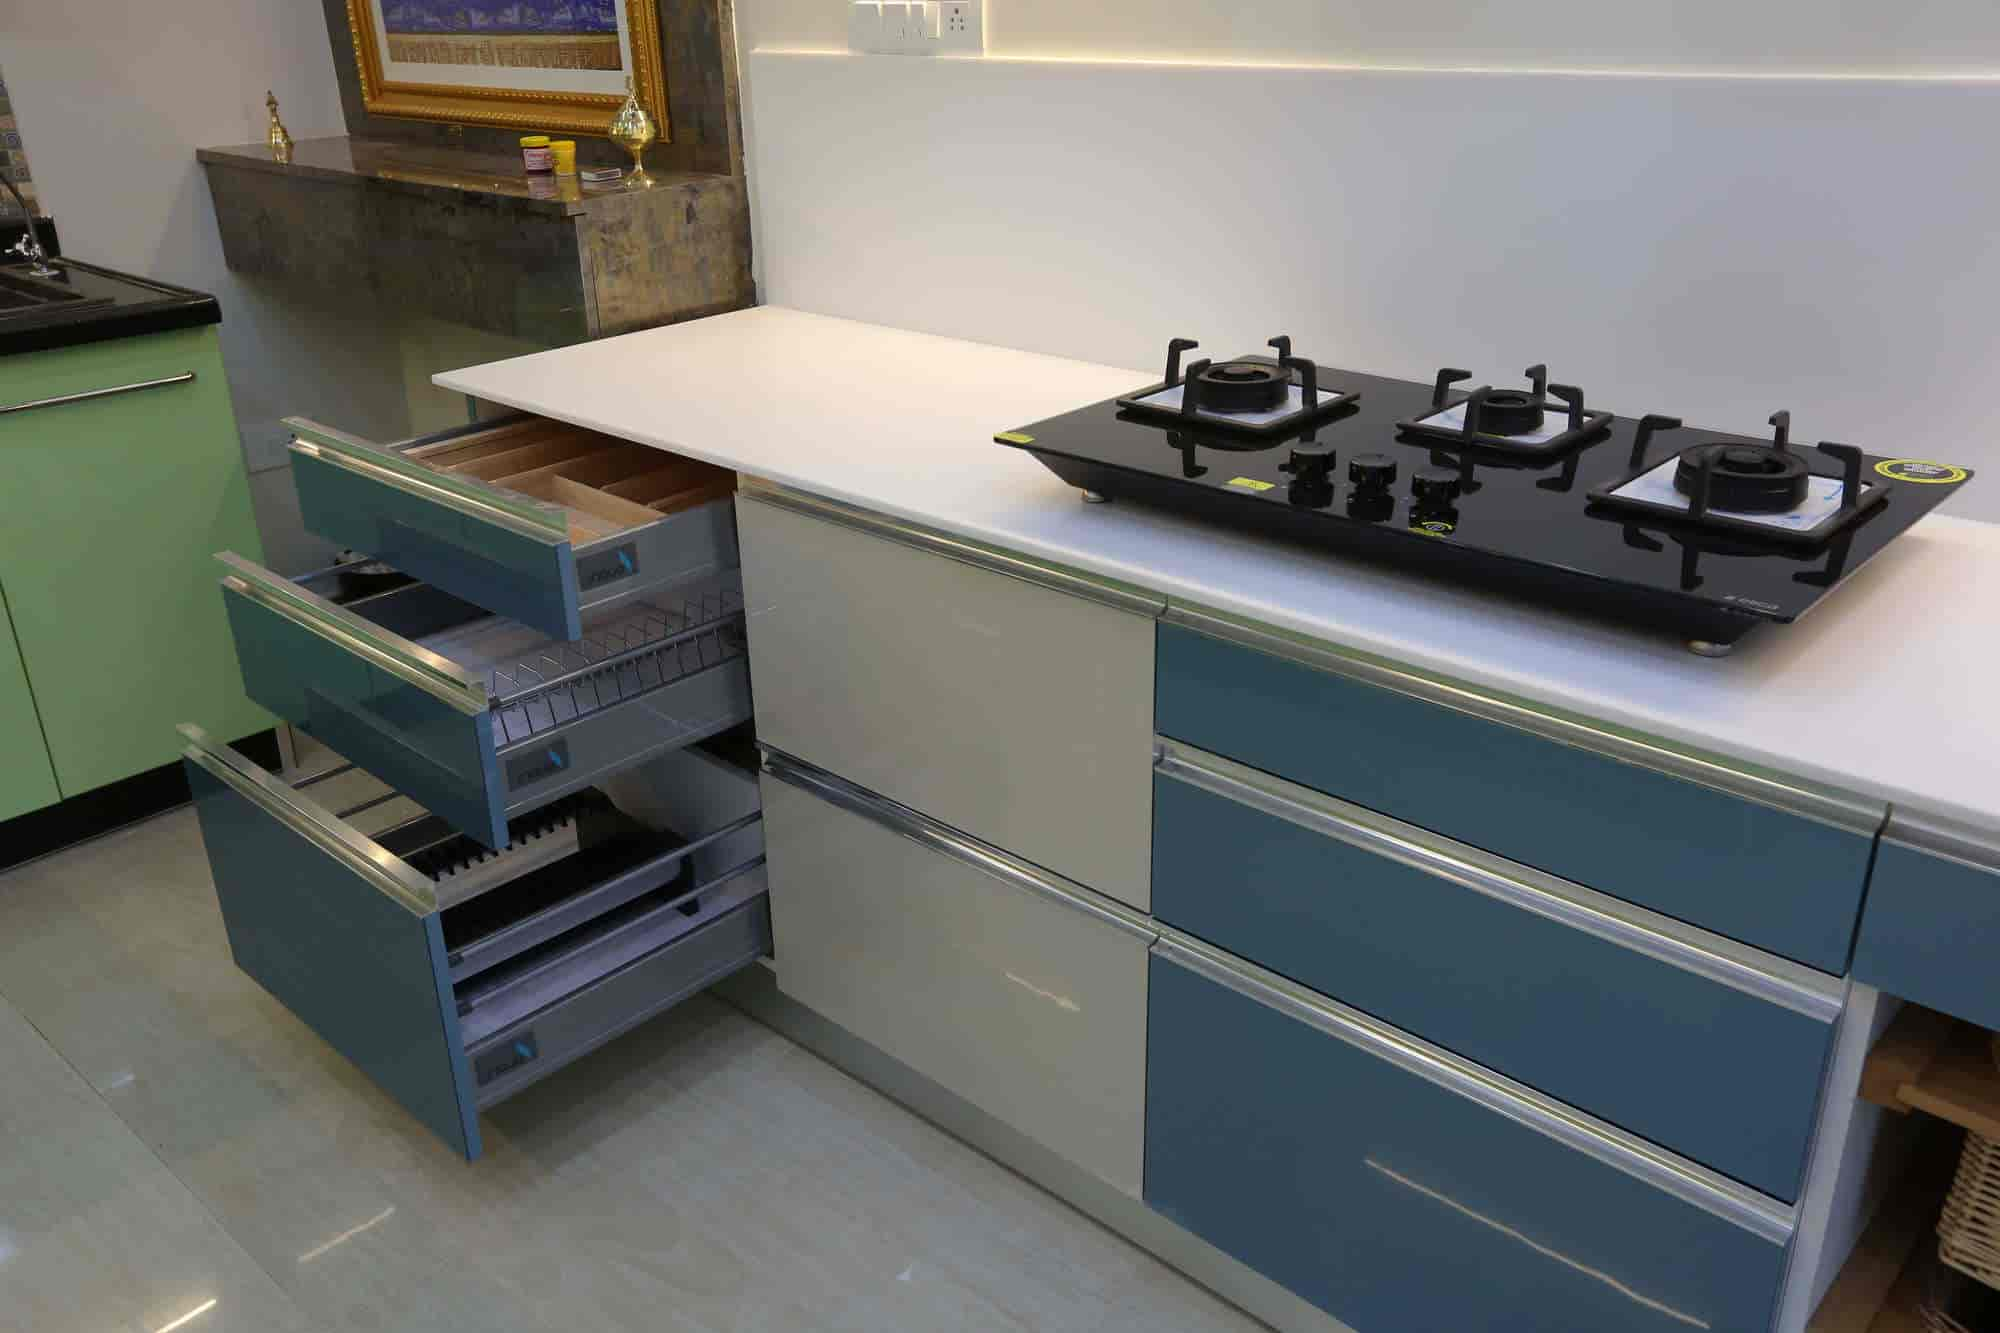 modular kitchen usa small square table dks kitchens and accessories photos mapusa goa pictures dk s dealers